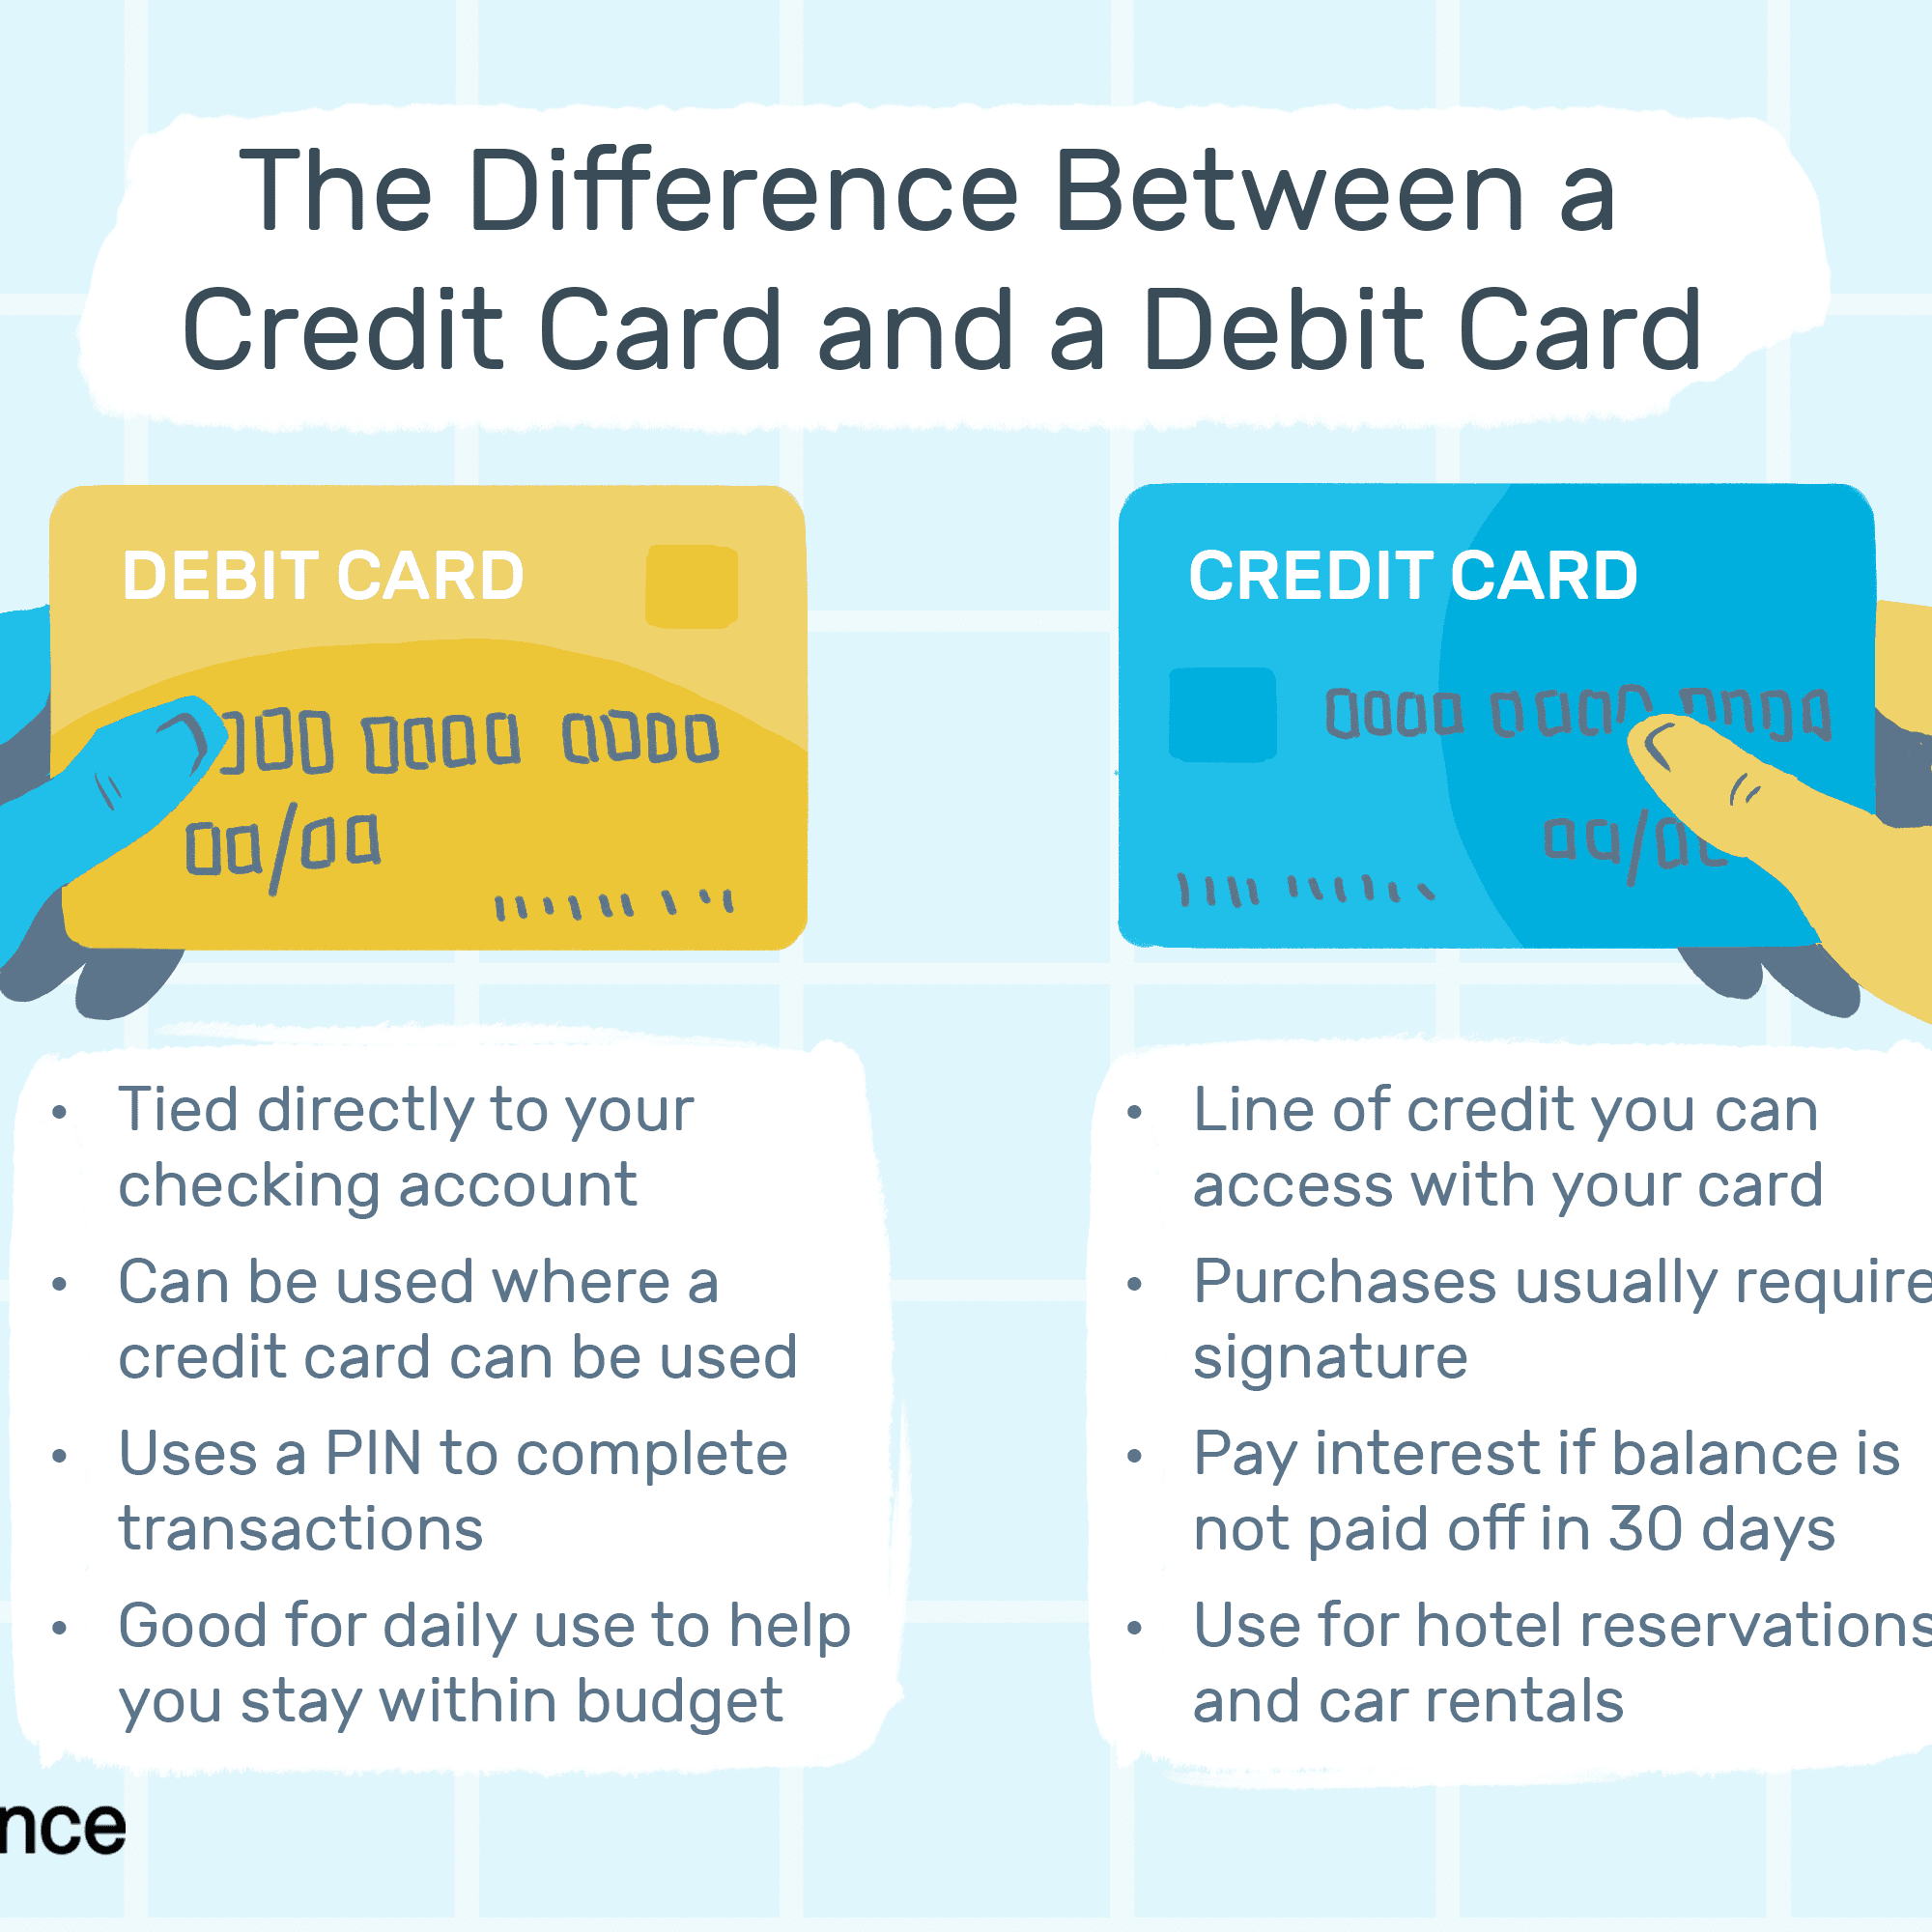 The Difference Between Credit Card and a Debit Card